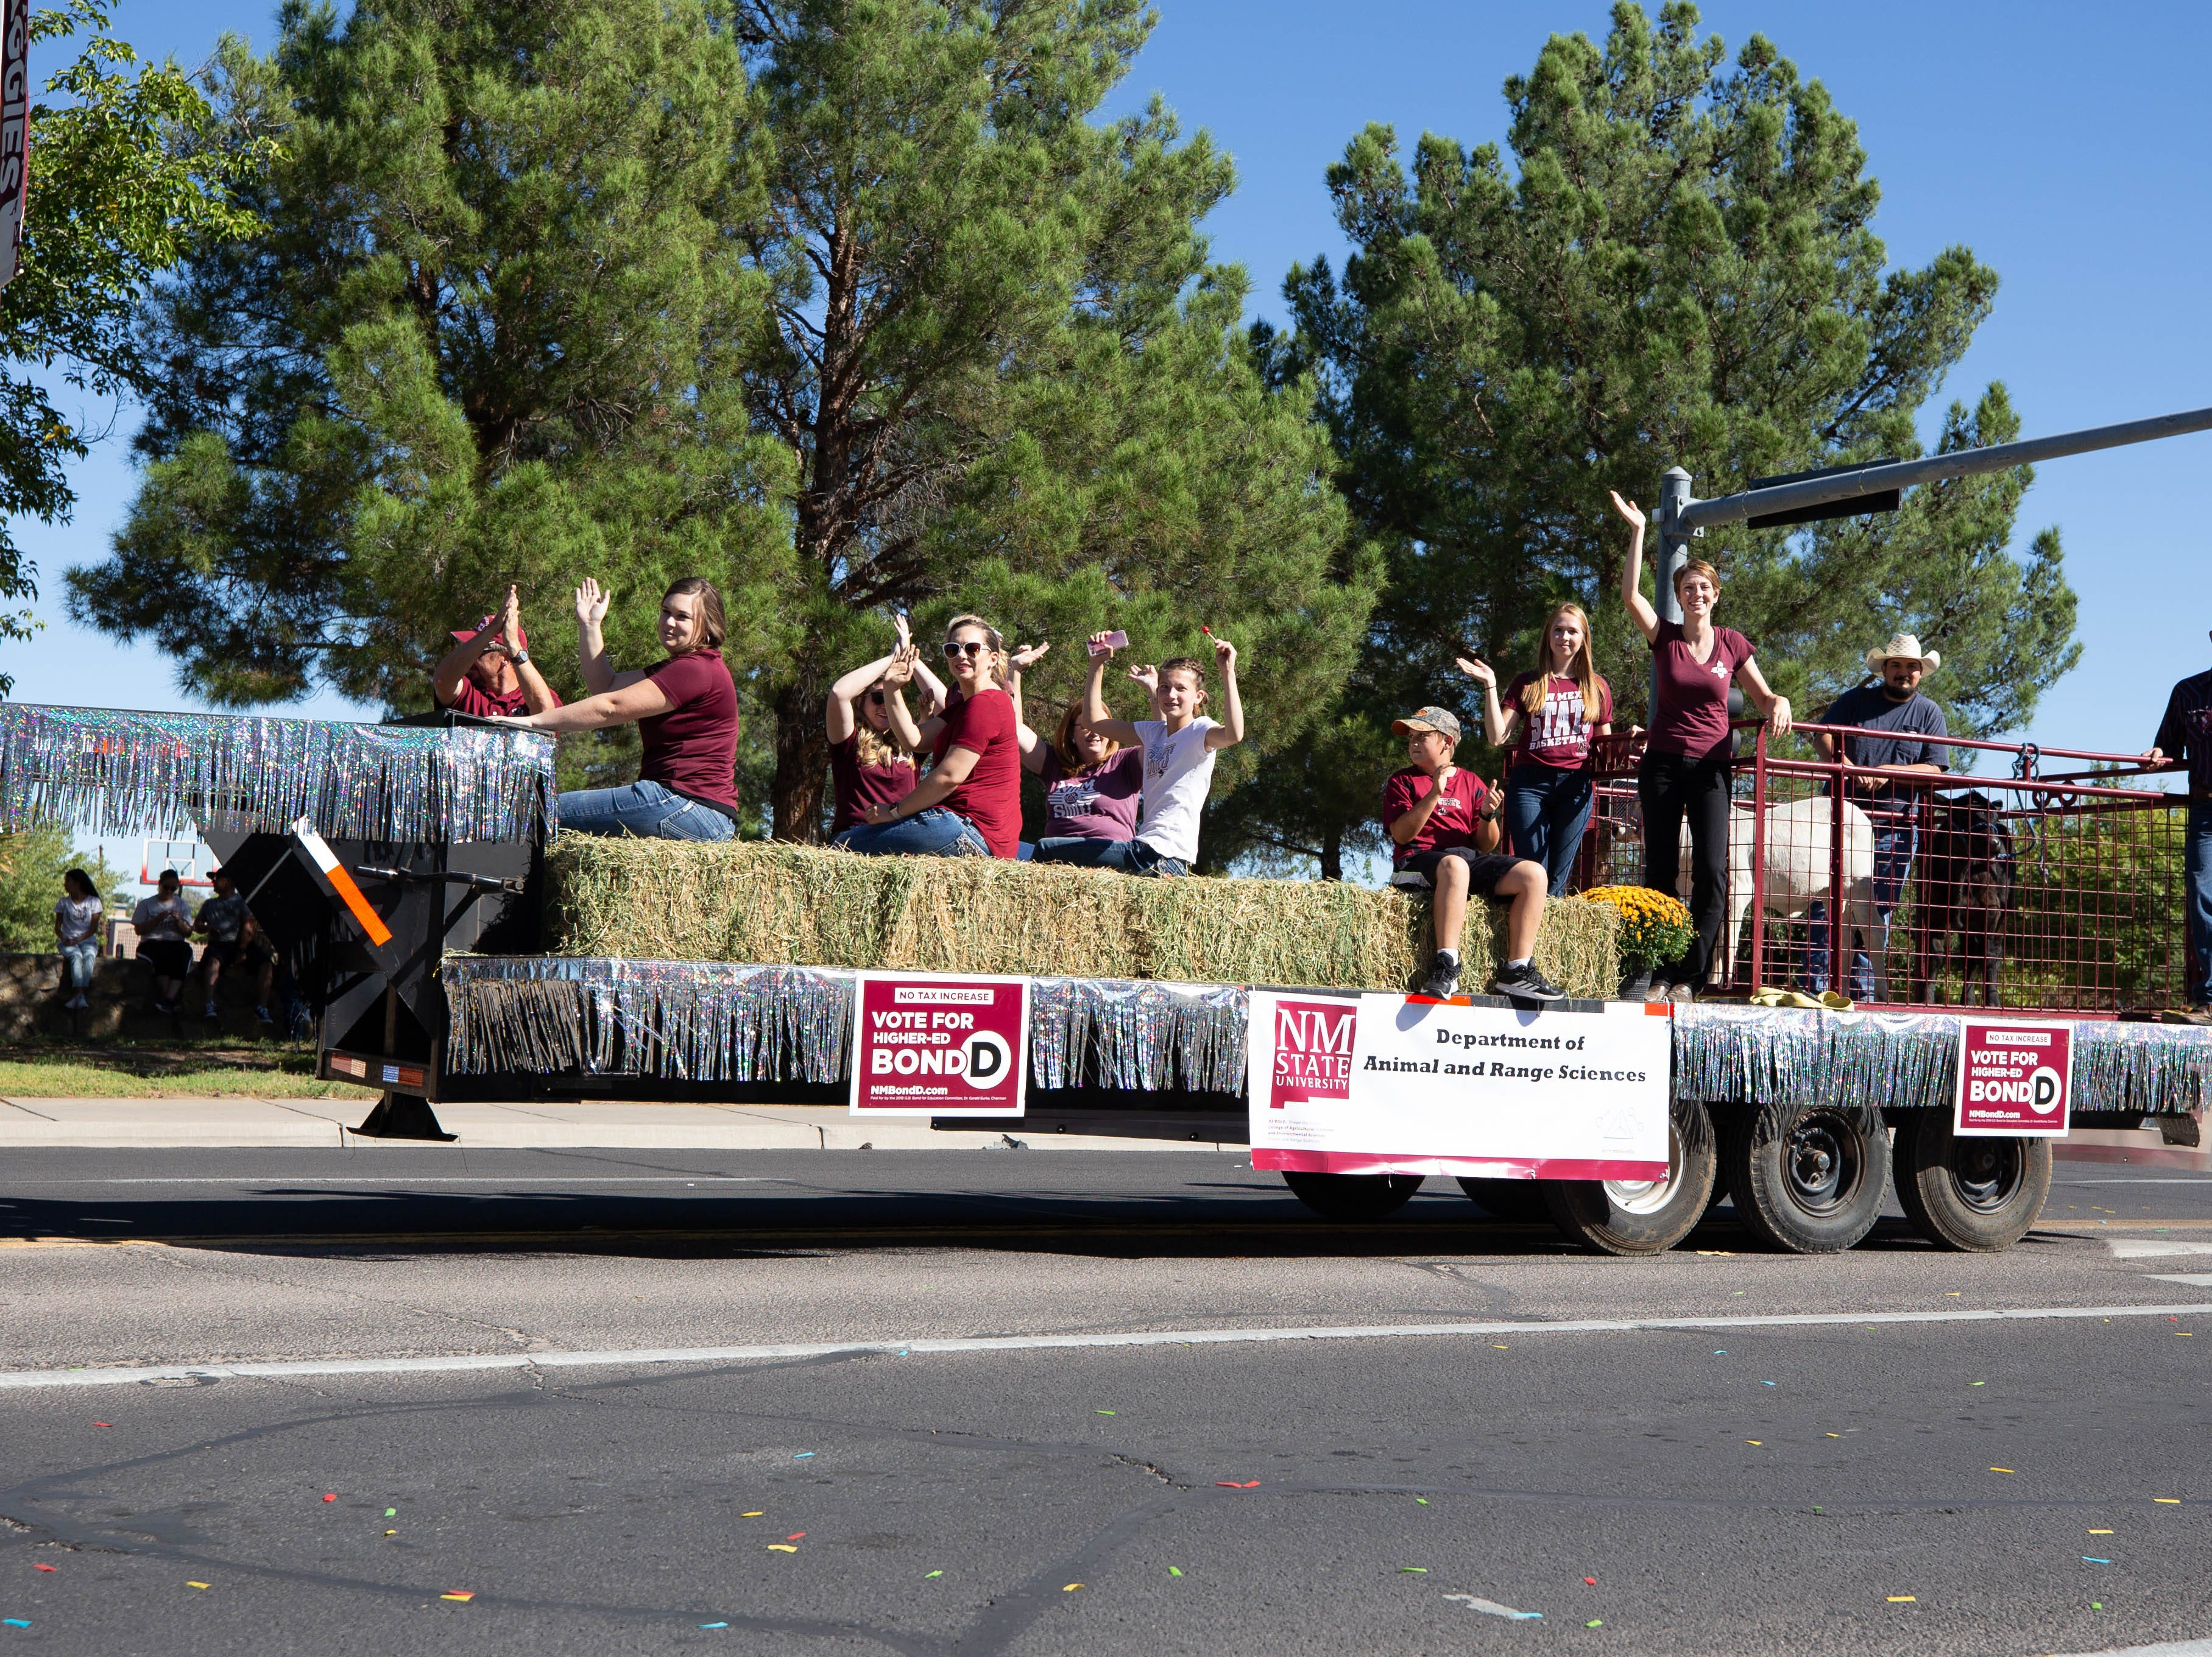 NMSU Animal and Range Sciences float entry at the NMSU Homecoming Parade on October 6, 2018.